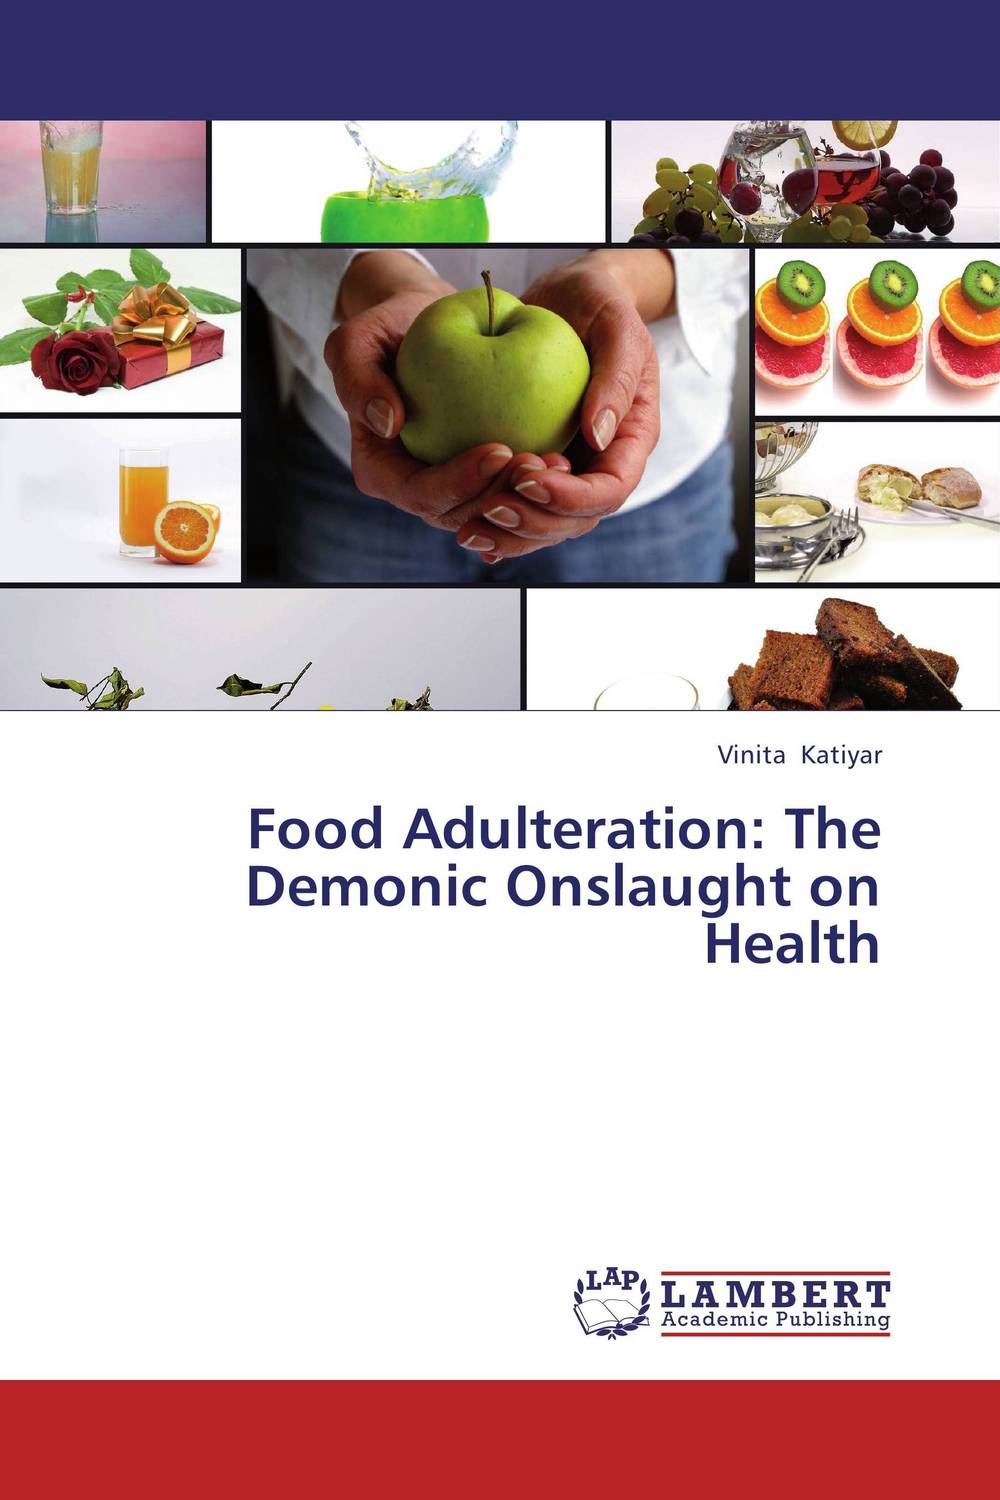 Food Adulteration: The Demonic Onslaught on Health